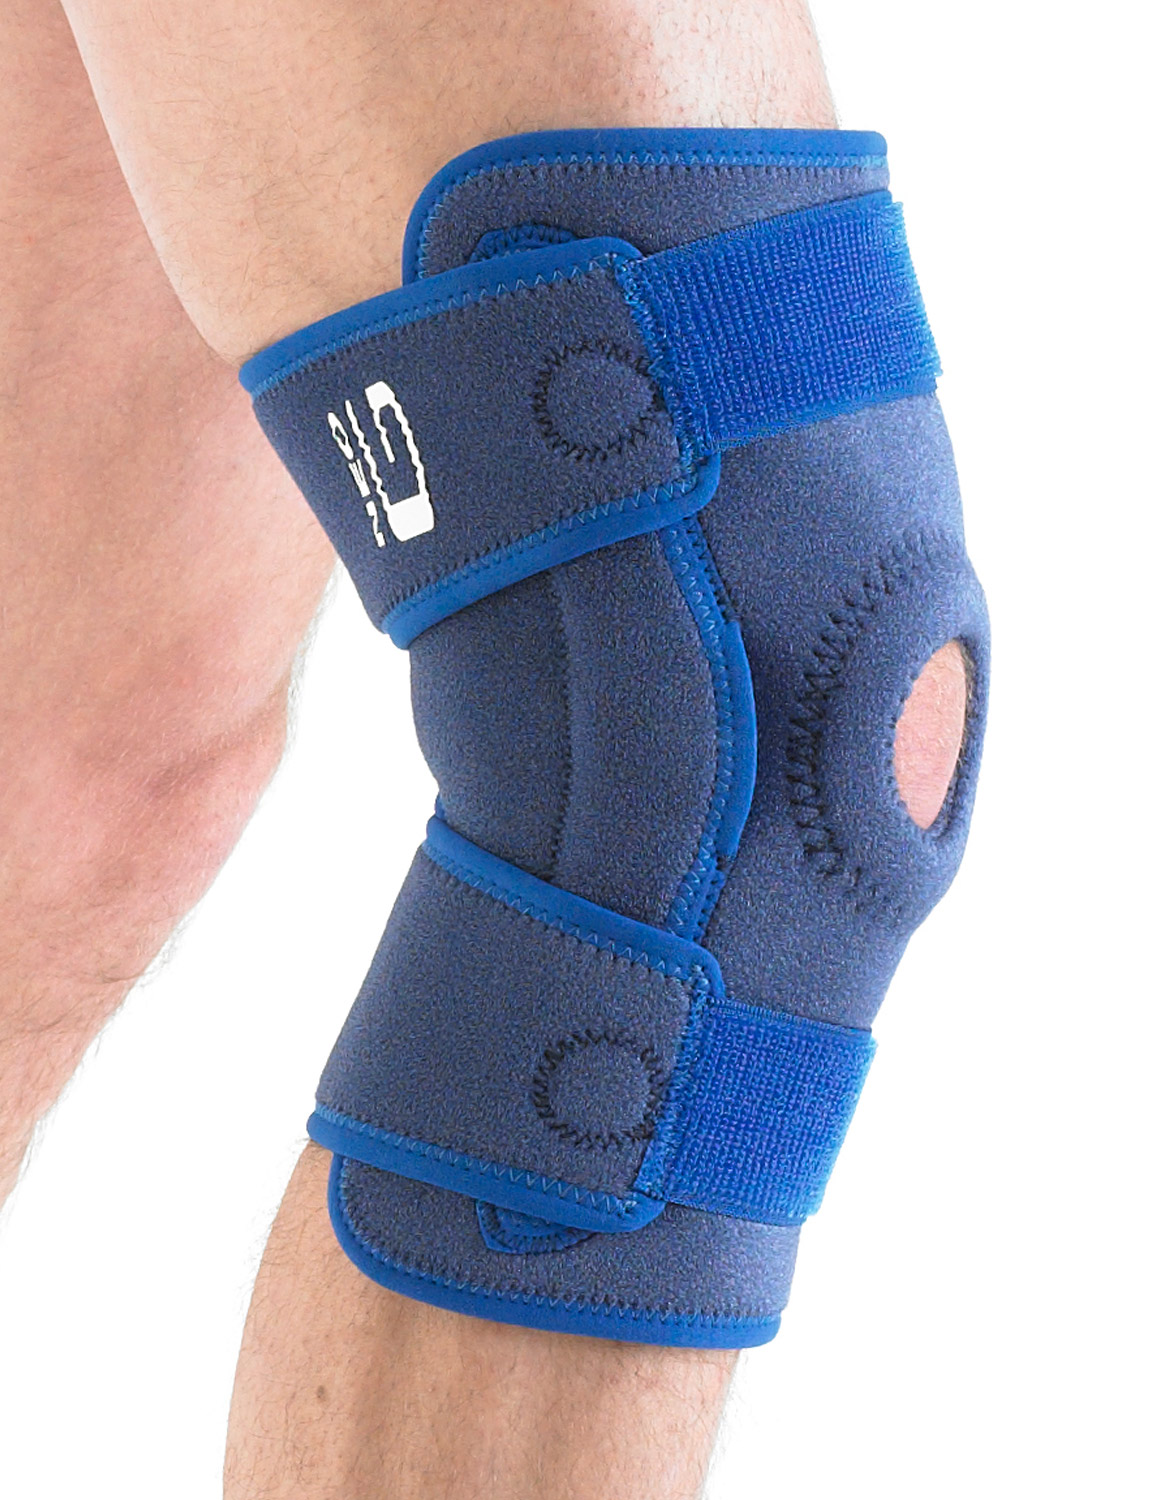 894 - HINGED OPEN KNEE SUPPORT   Weight bearing pressure during movement is more evenly distributed over the joint helping with arthritic and meniscus pain.